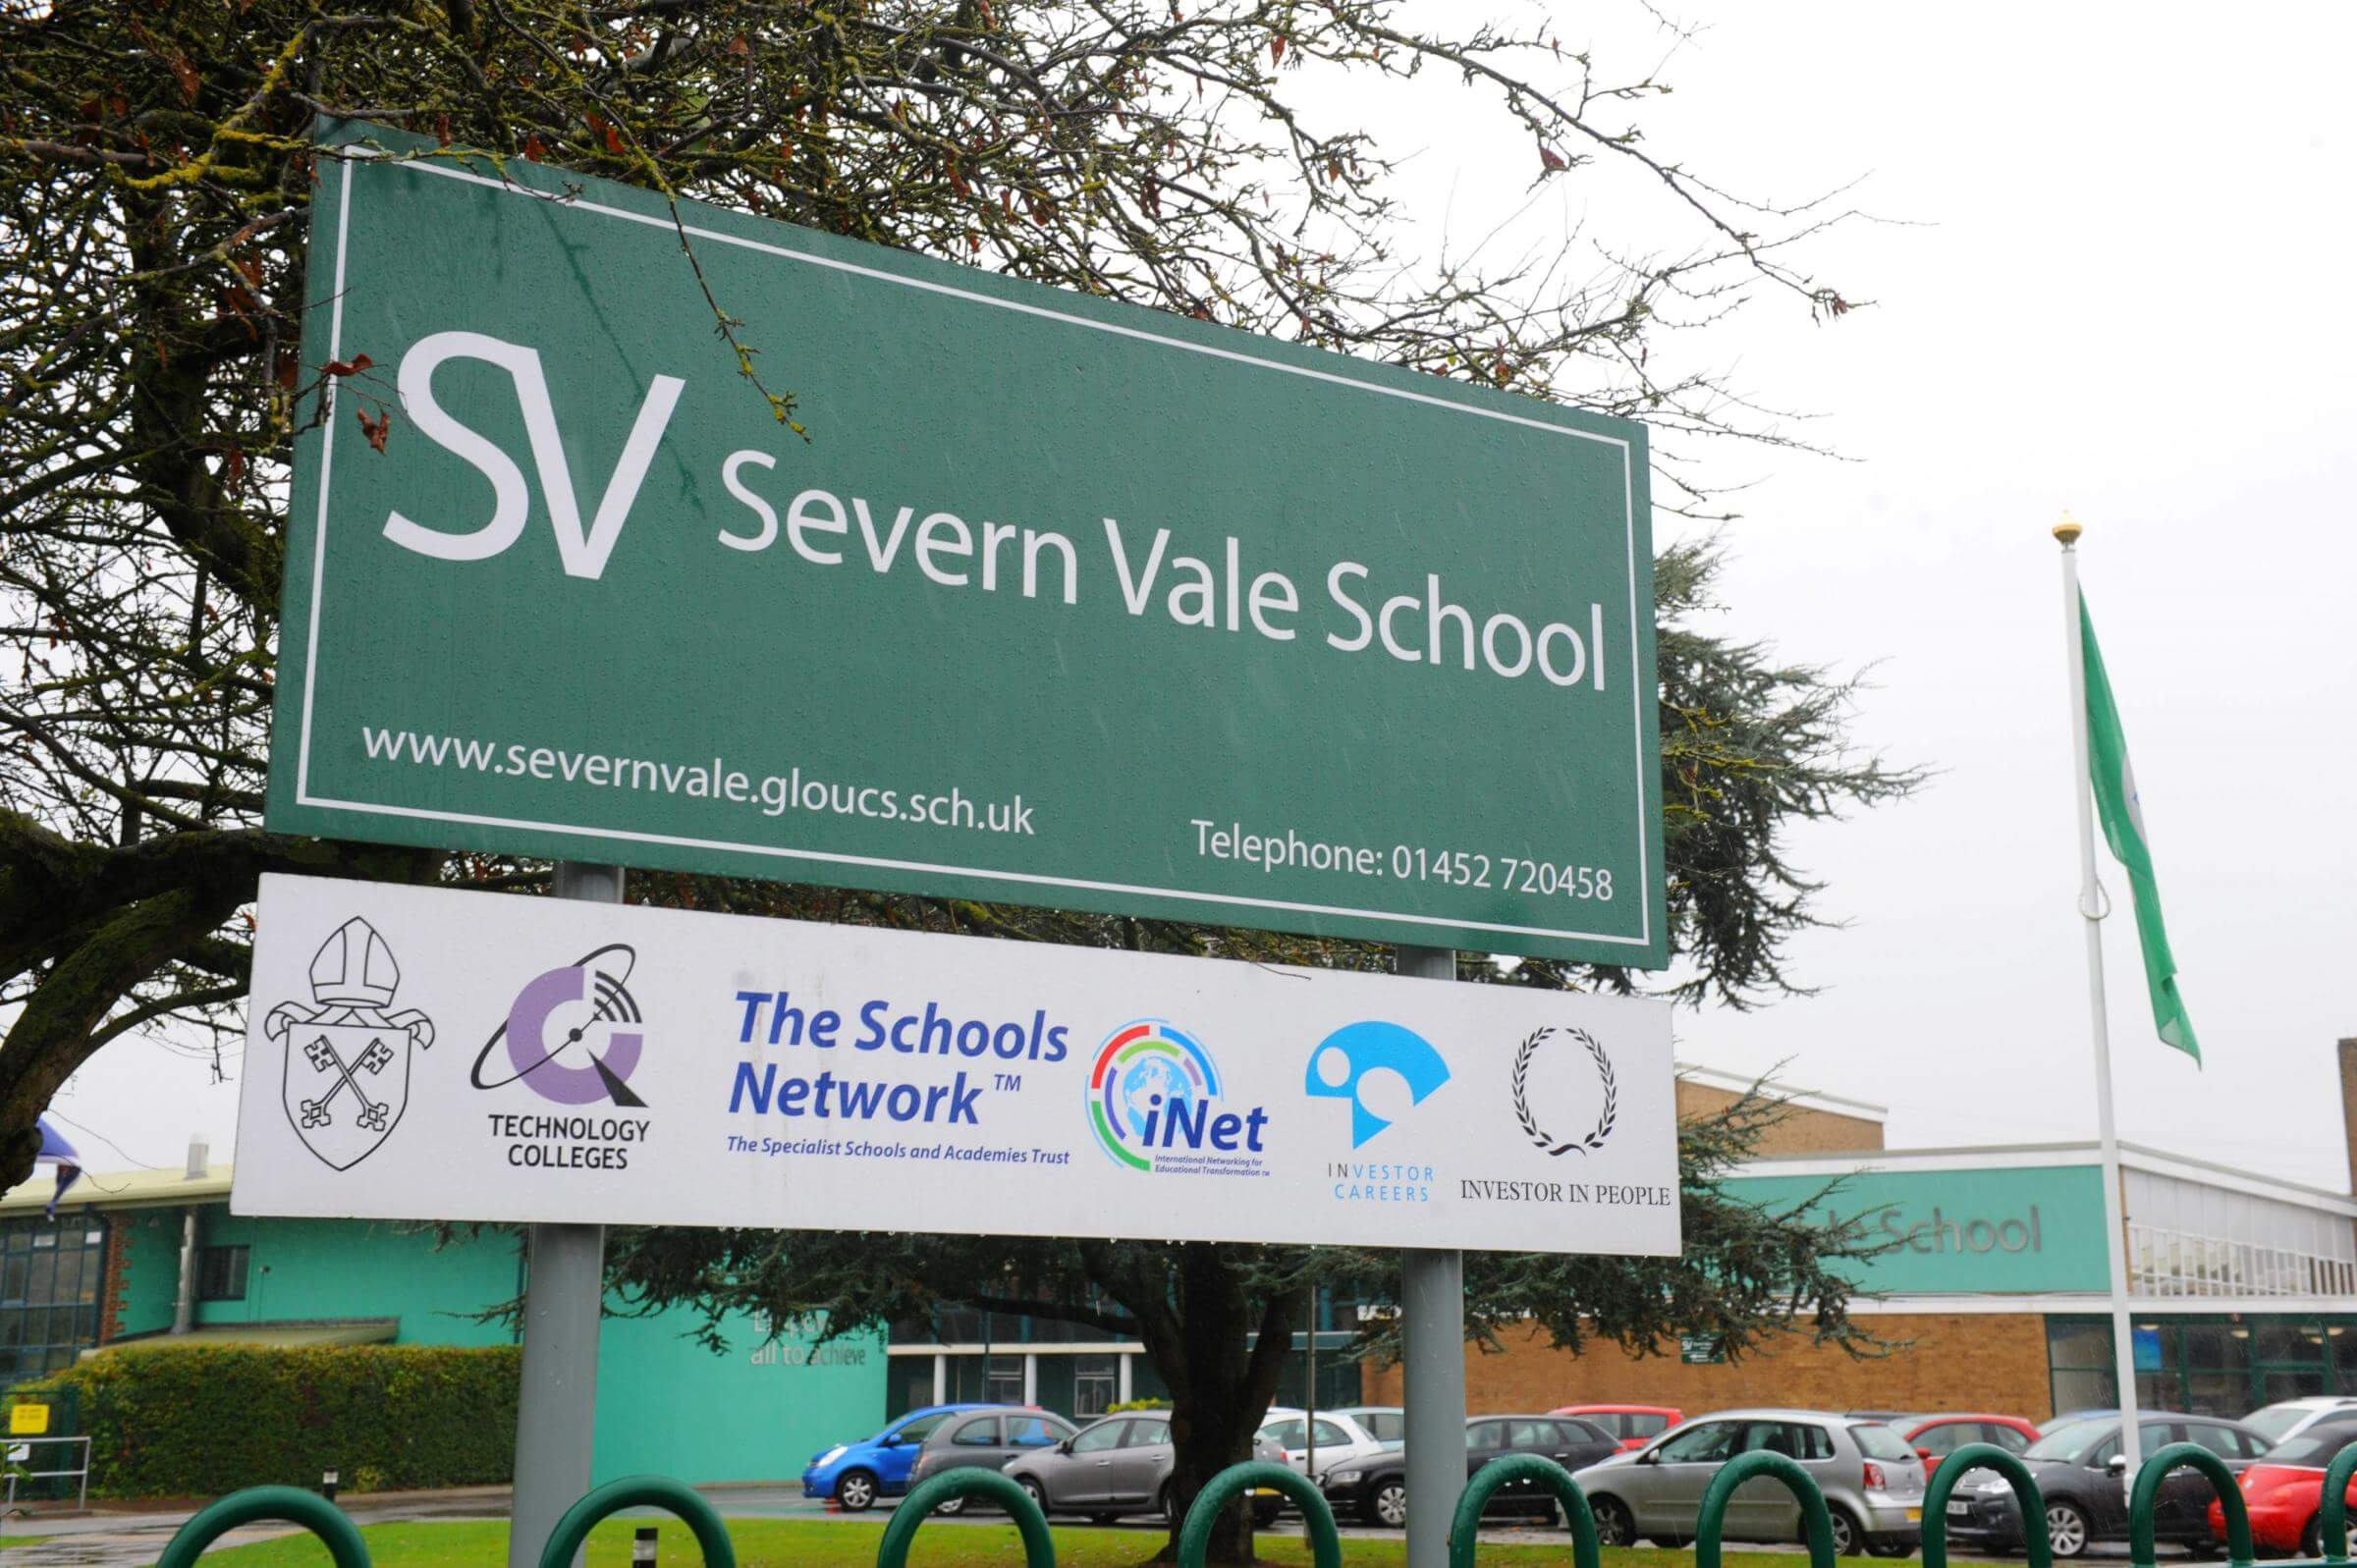 Severn Vale School building